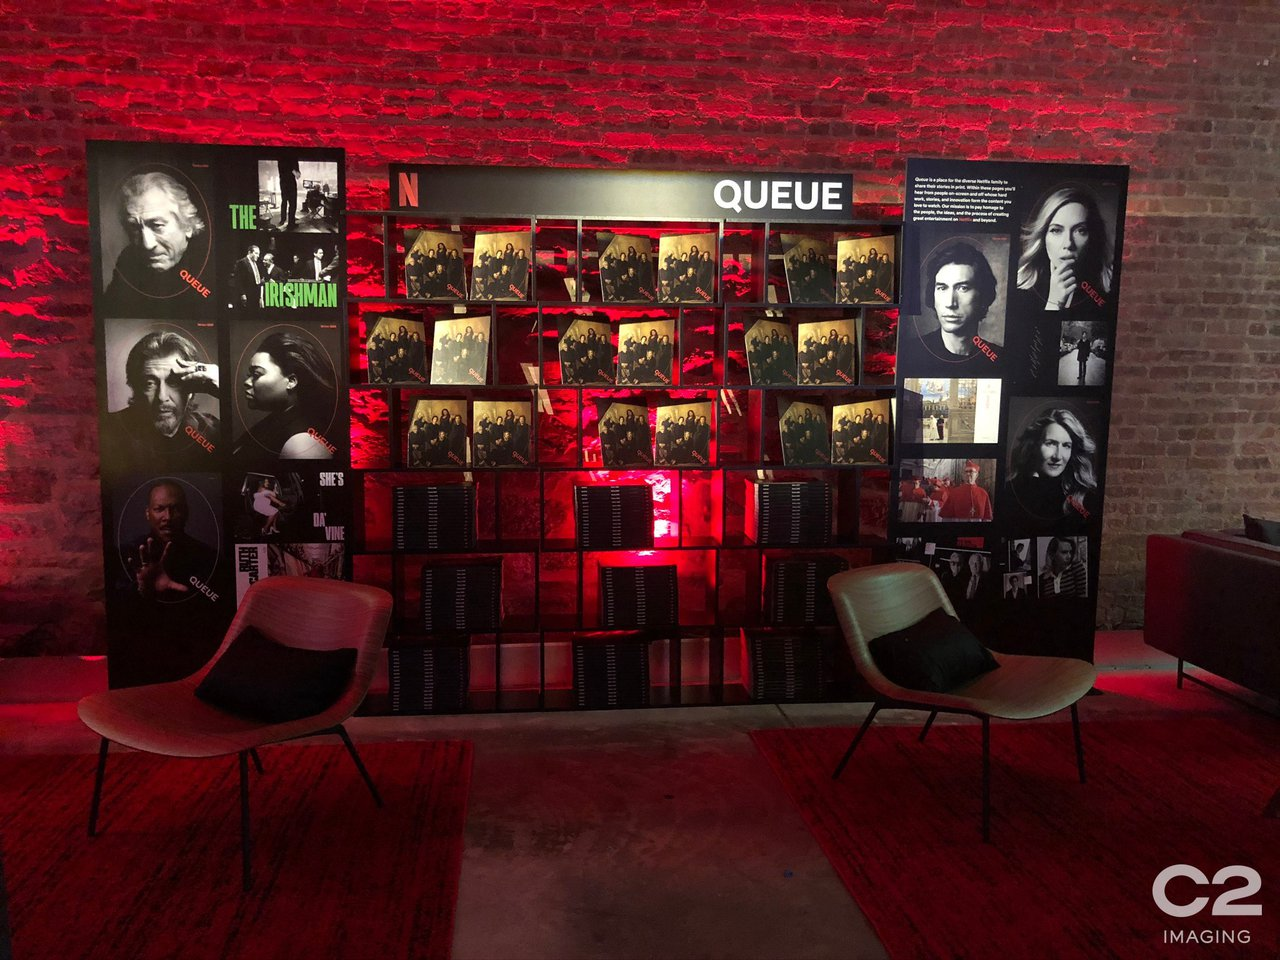 Dolby SoHo's Netflix Film Experiences photo IMG_5383.jpg